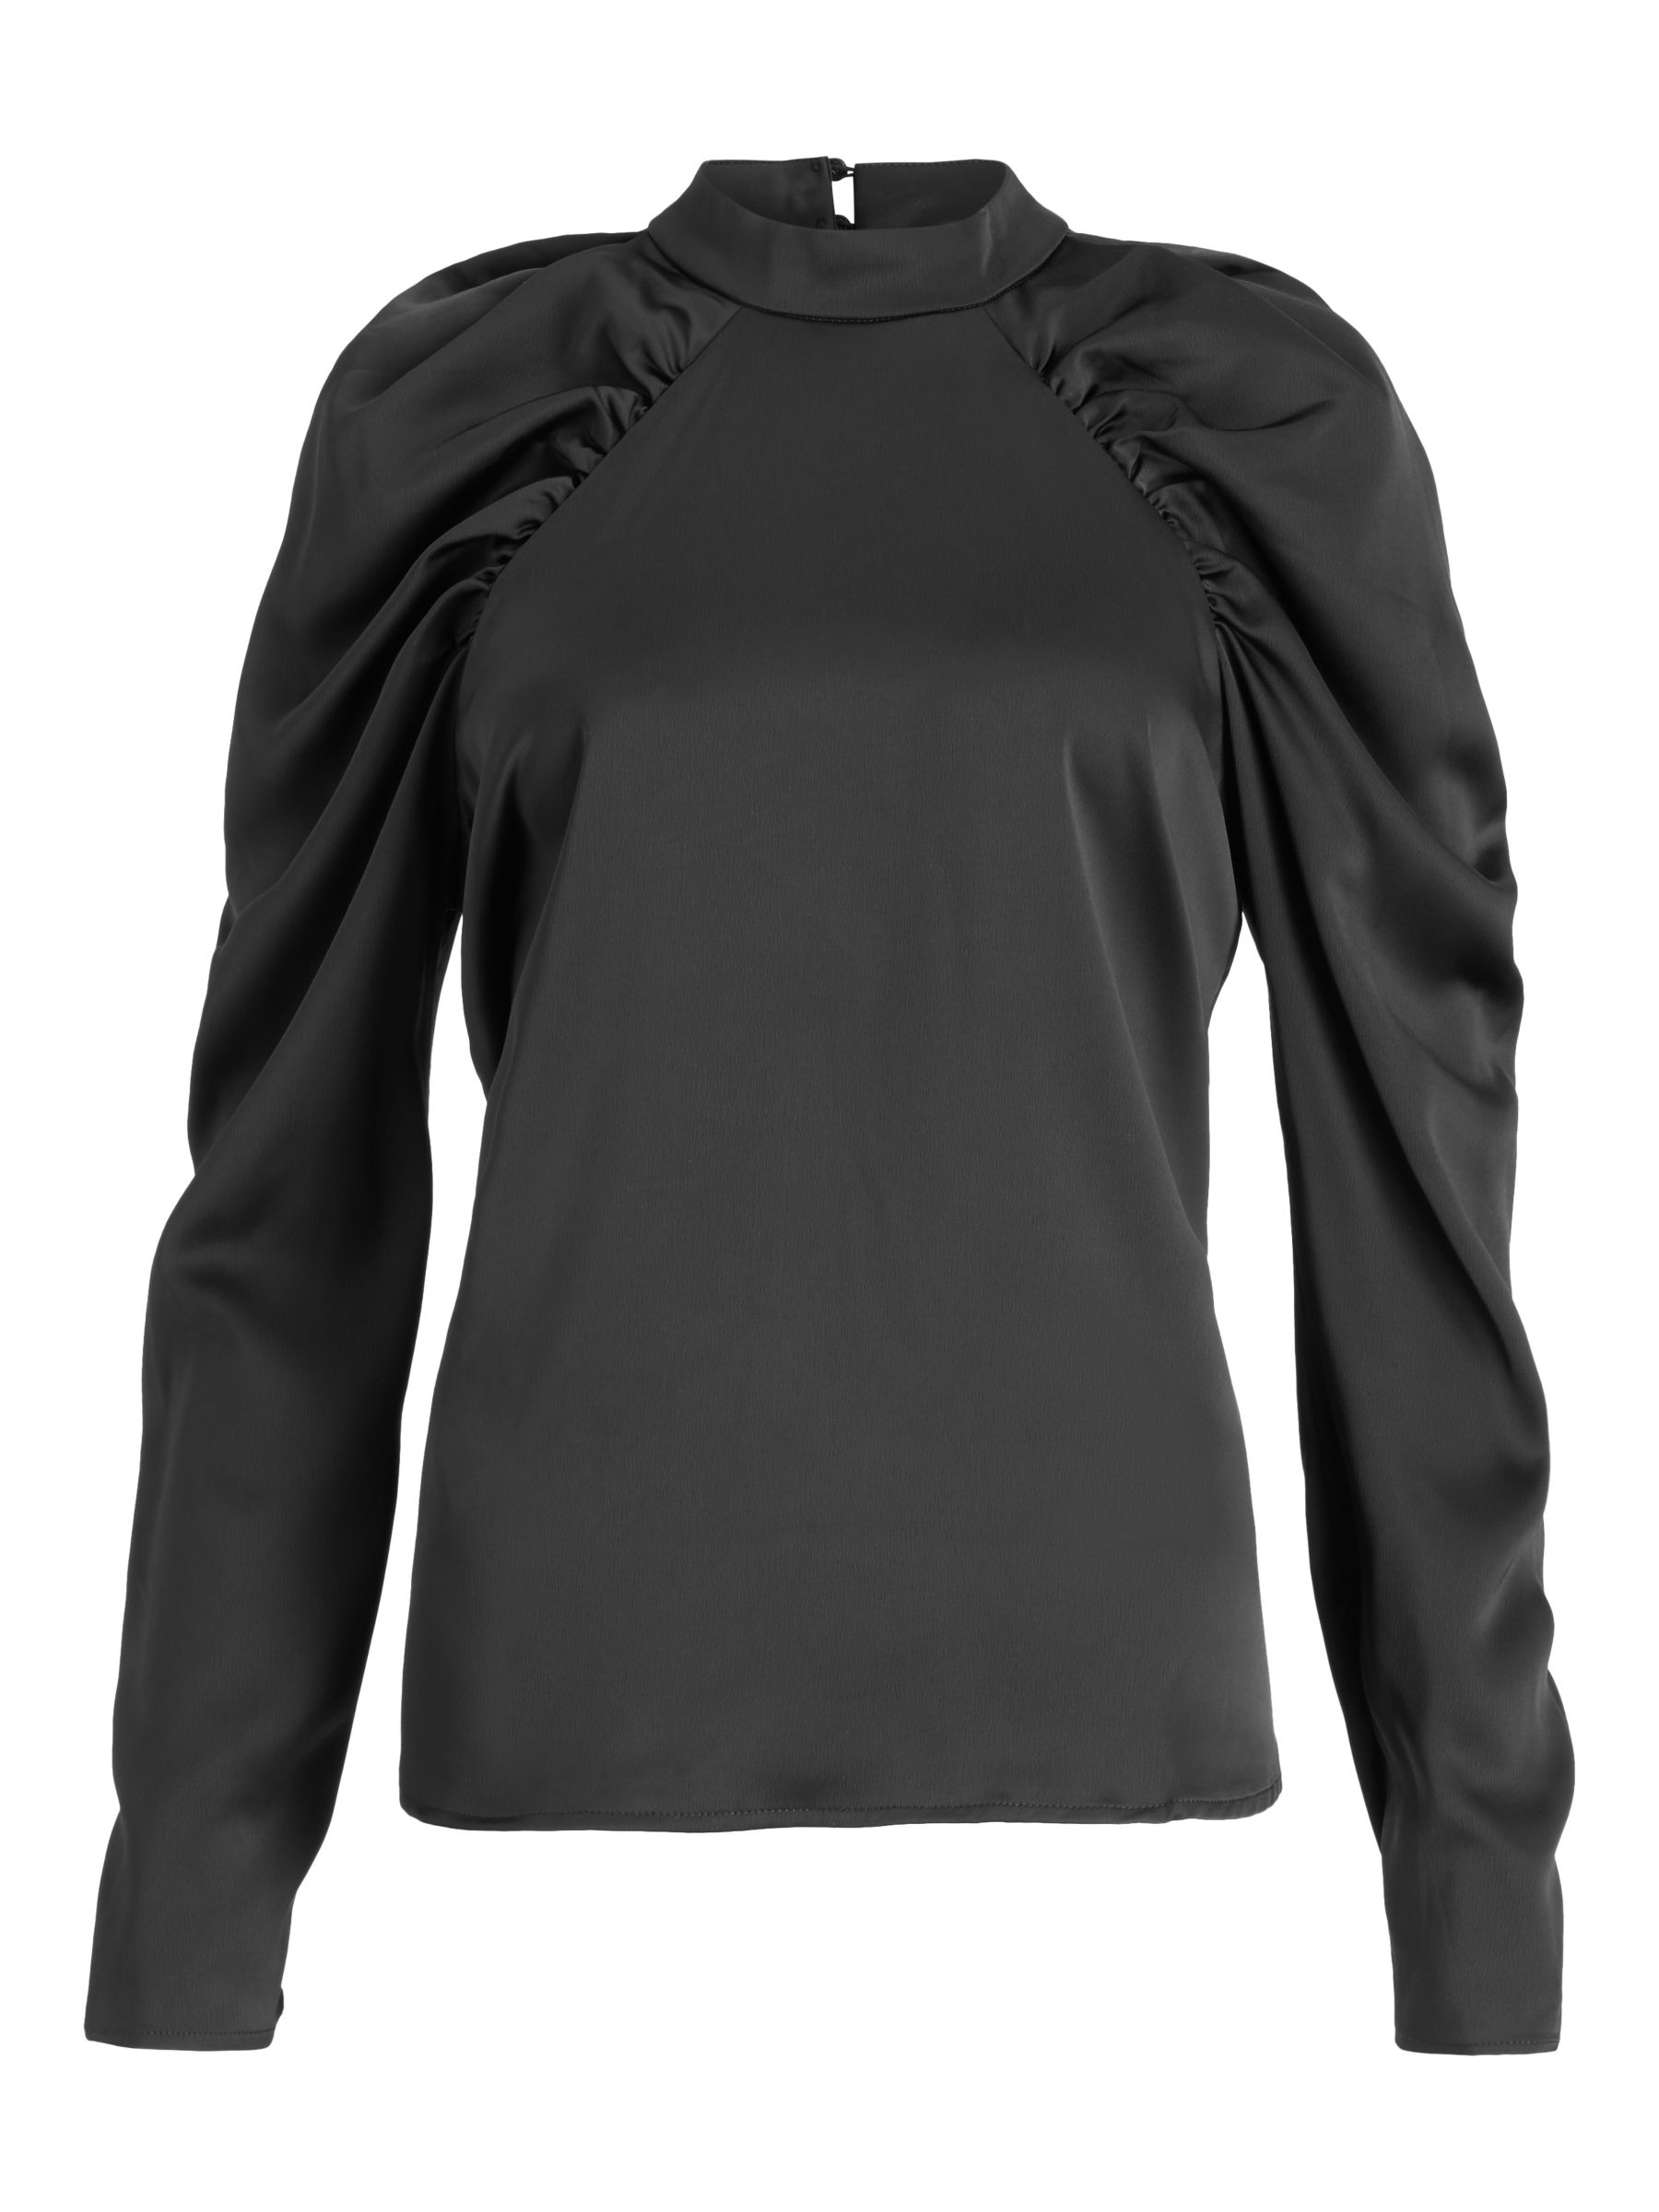 Vero Moda AWARE BY VERO MODA Jarrow Blouse